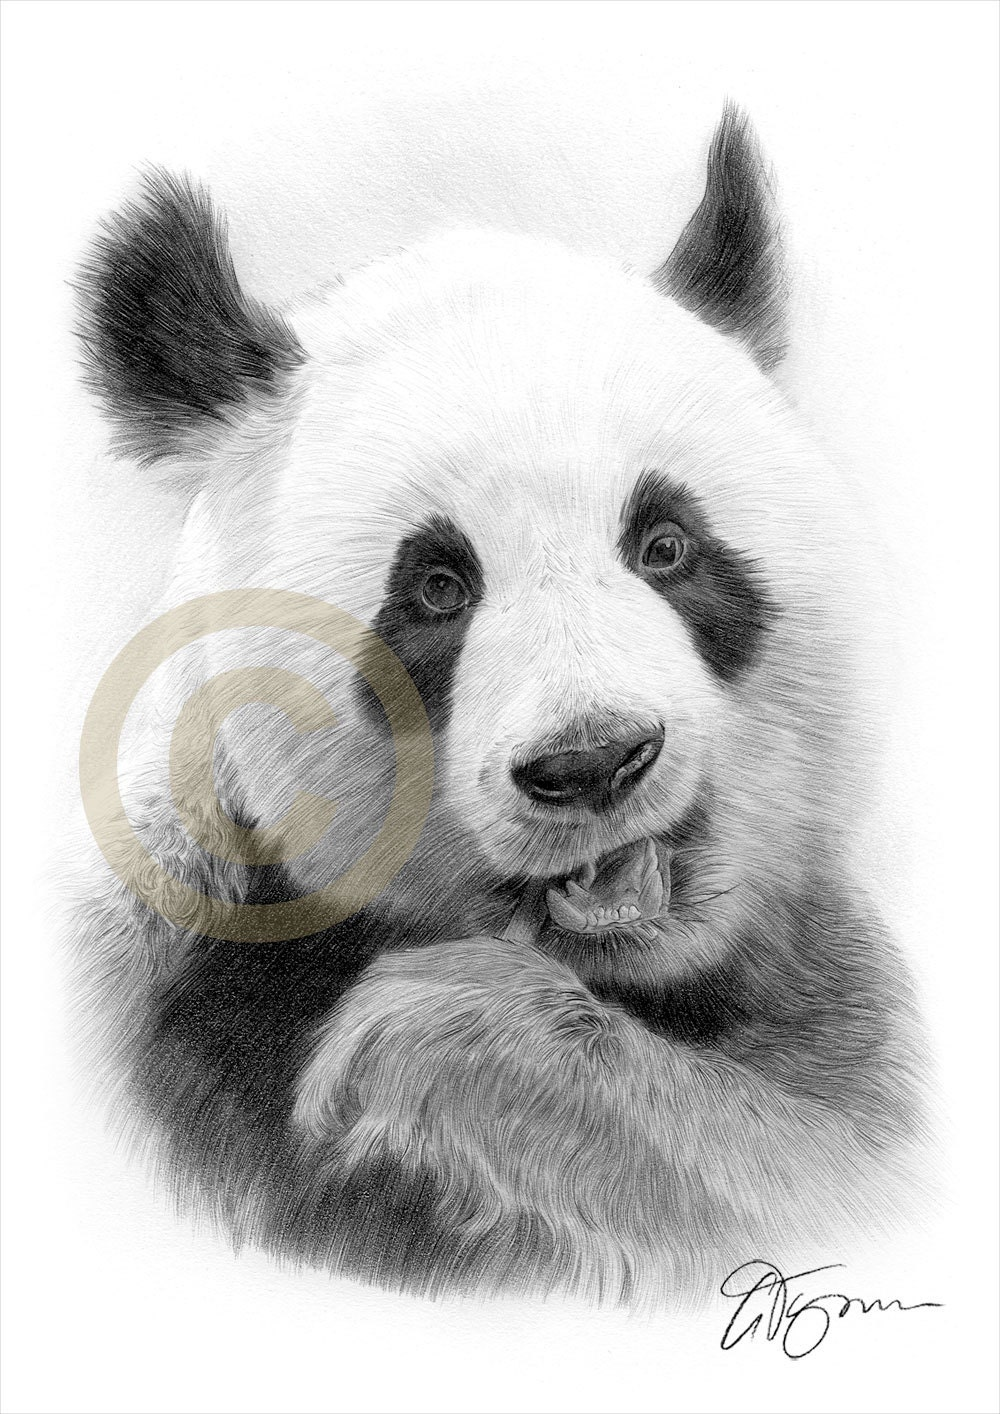 Giant panda art pencil drawing print wildlife artwork artwork signed by artist gary tymon ltd ed 2 sizes pencil portrait